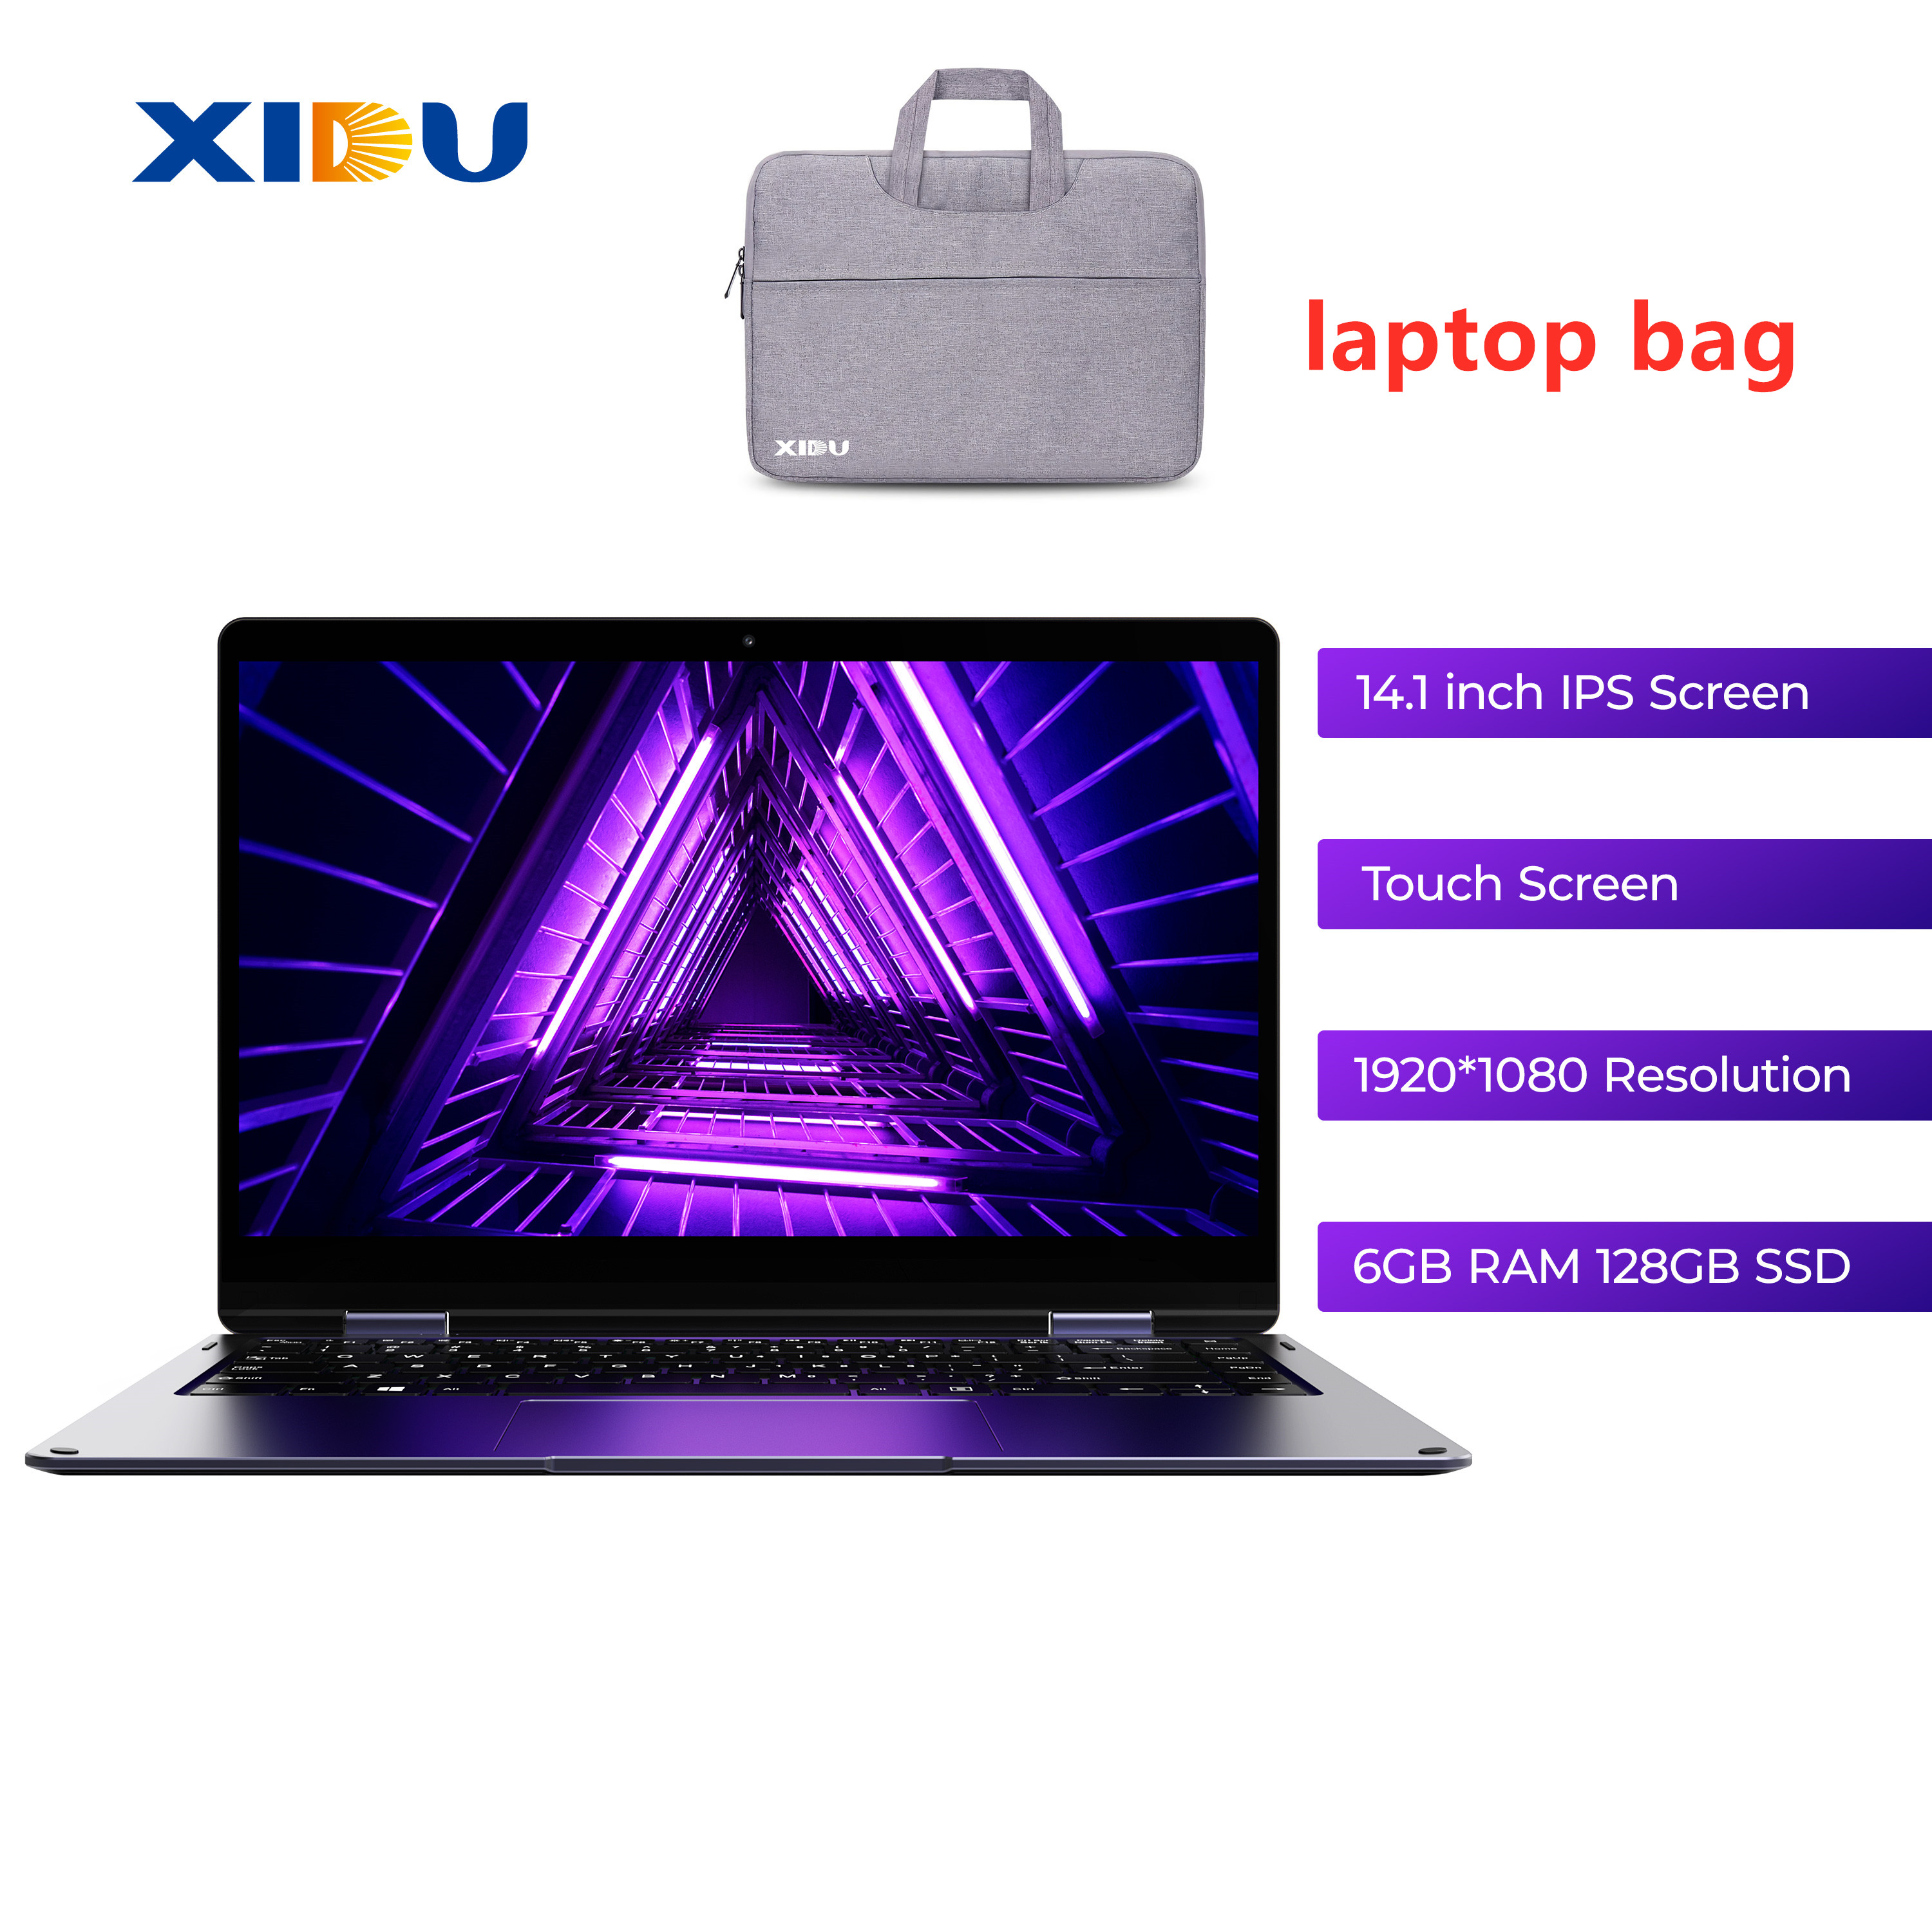 New XIDU 14.1 inch Laptop Computer Intel Apollo Lake Windows 10 Home Netbook 6GB RAM 128G SSD Aluminium Alloy Cover Ultrabook